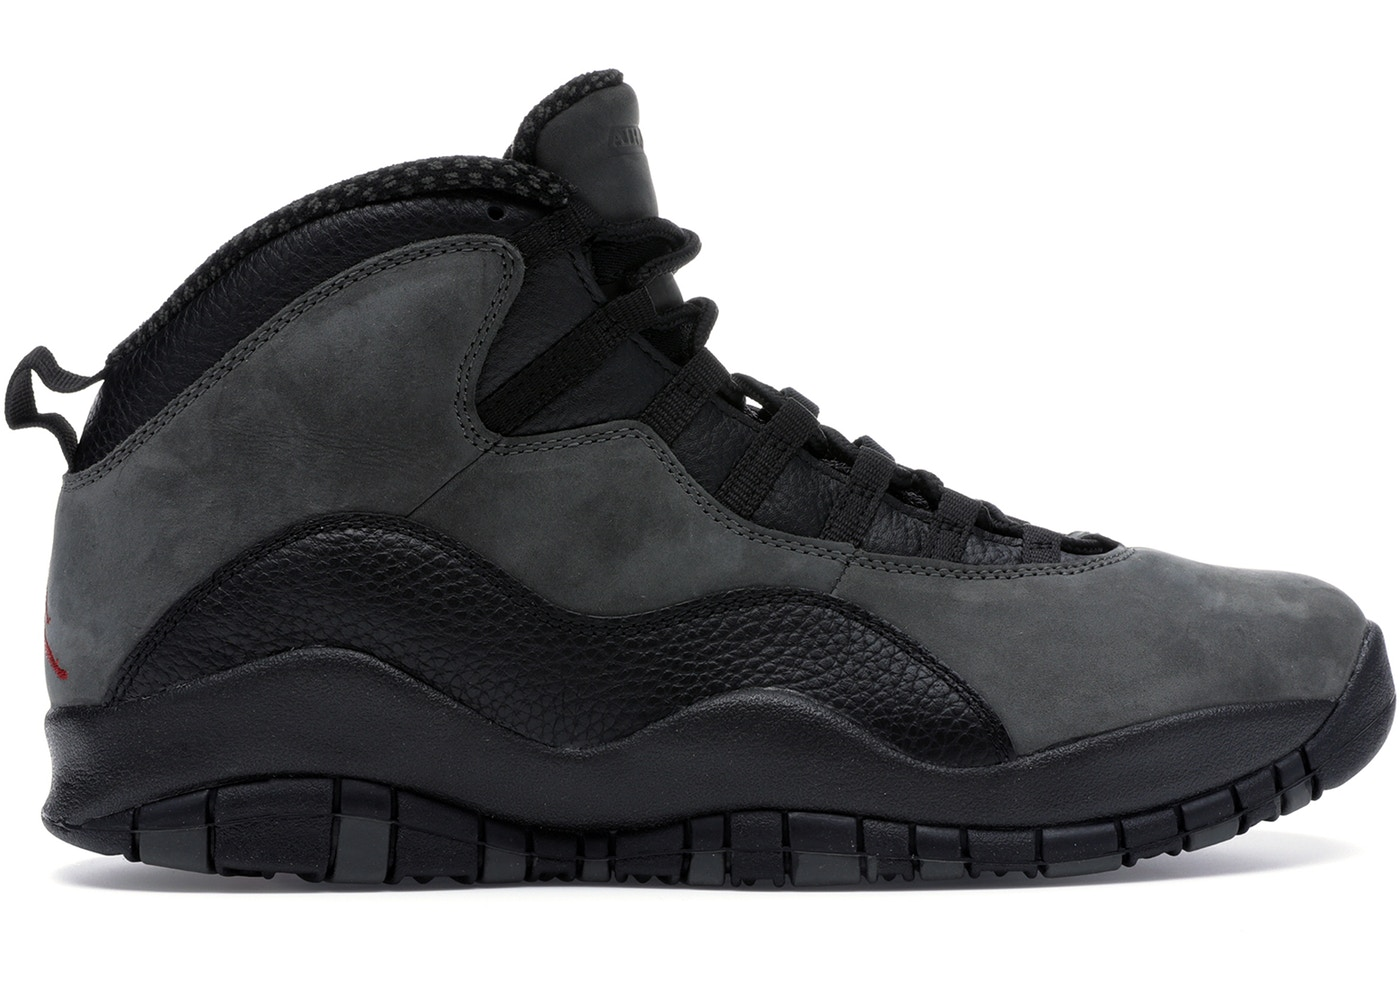 12e4832cad48 On Sale  Air Jordan 10 Retro